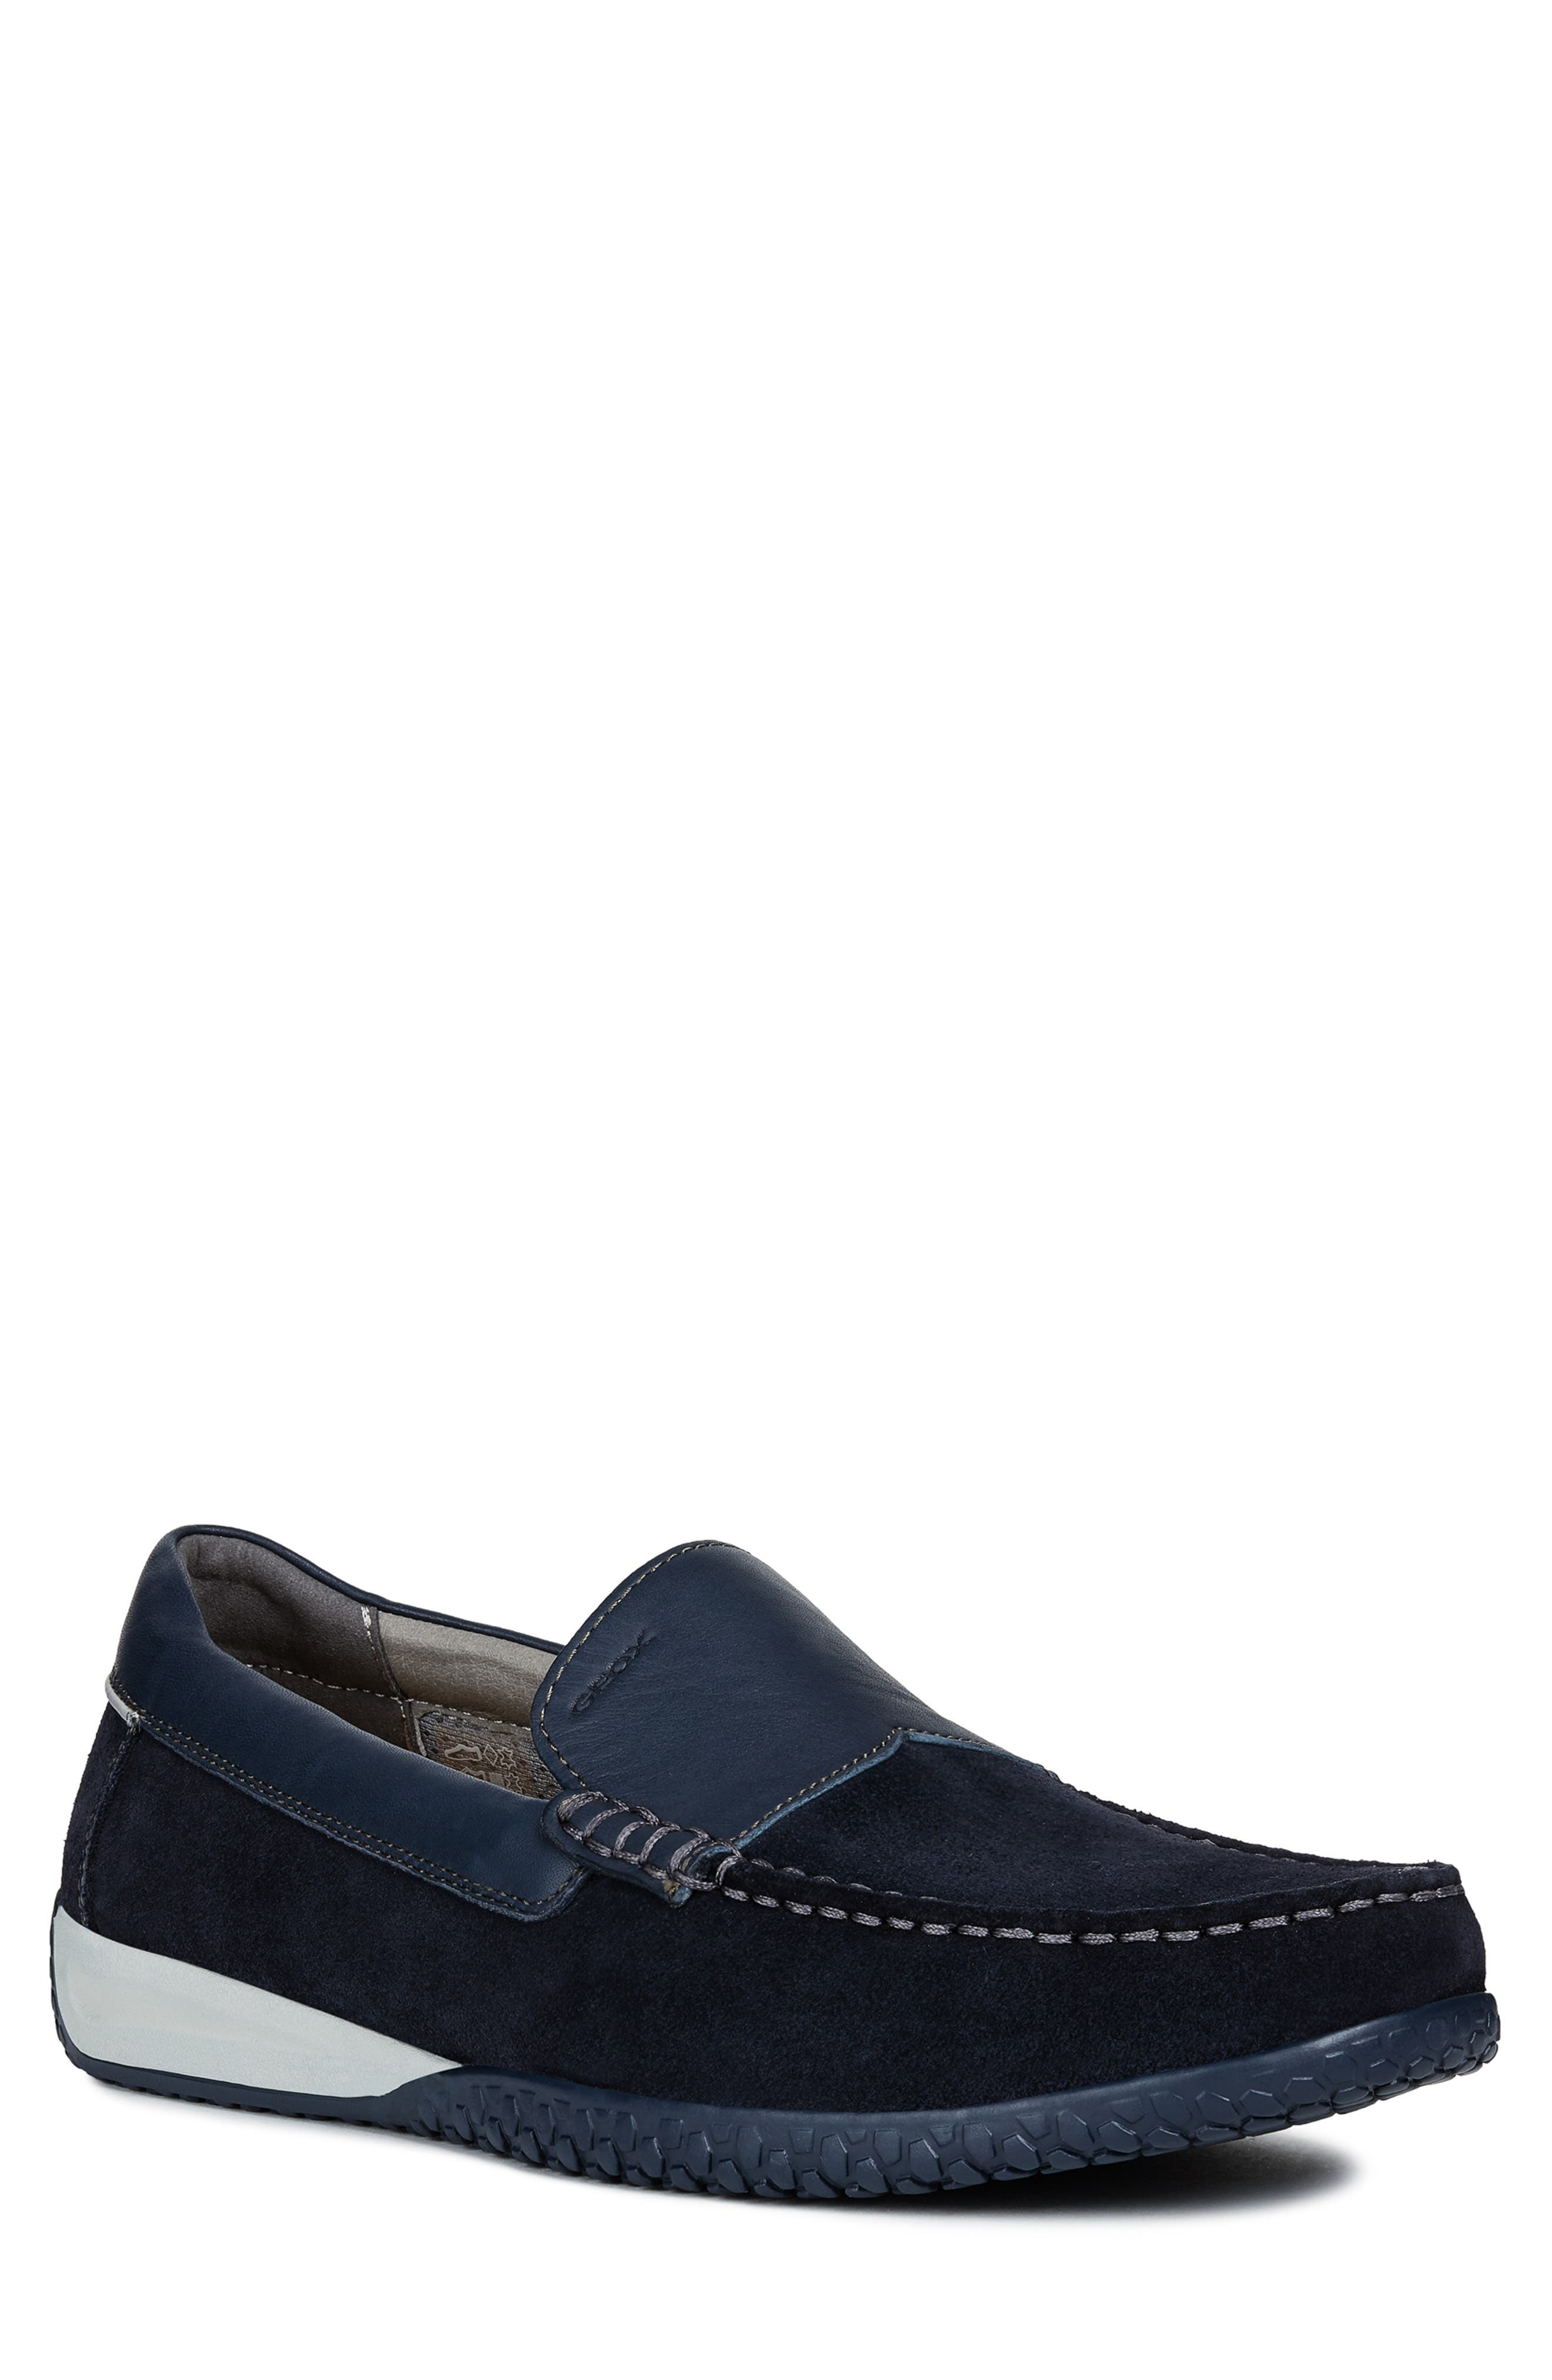 GEOX, Delrick 2 Slip-On, Main thumbnail 1, color, NAVY SUEDE/ LEATHER